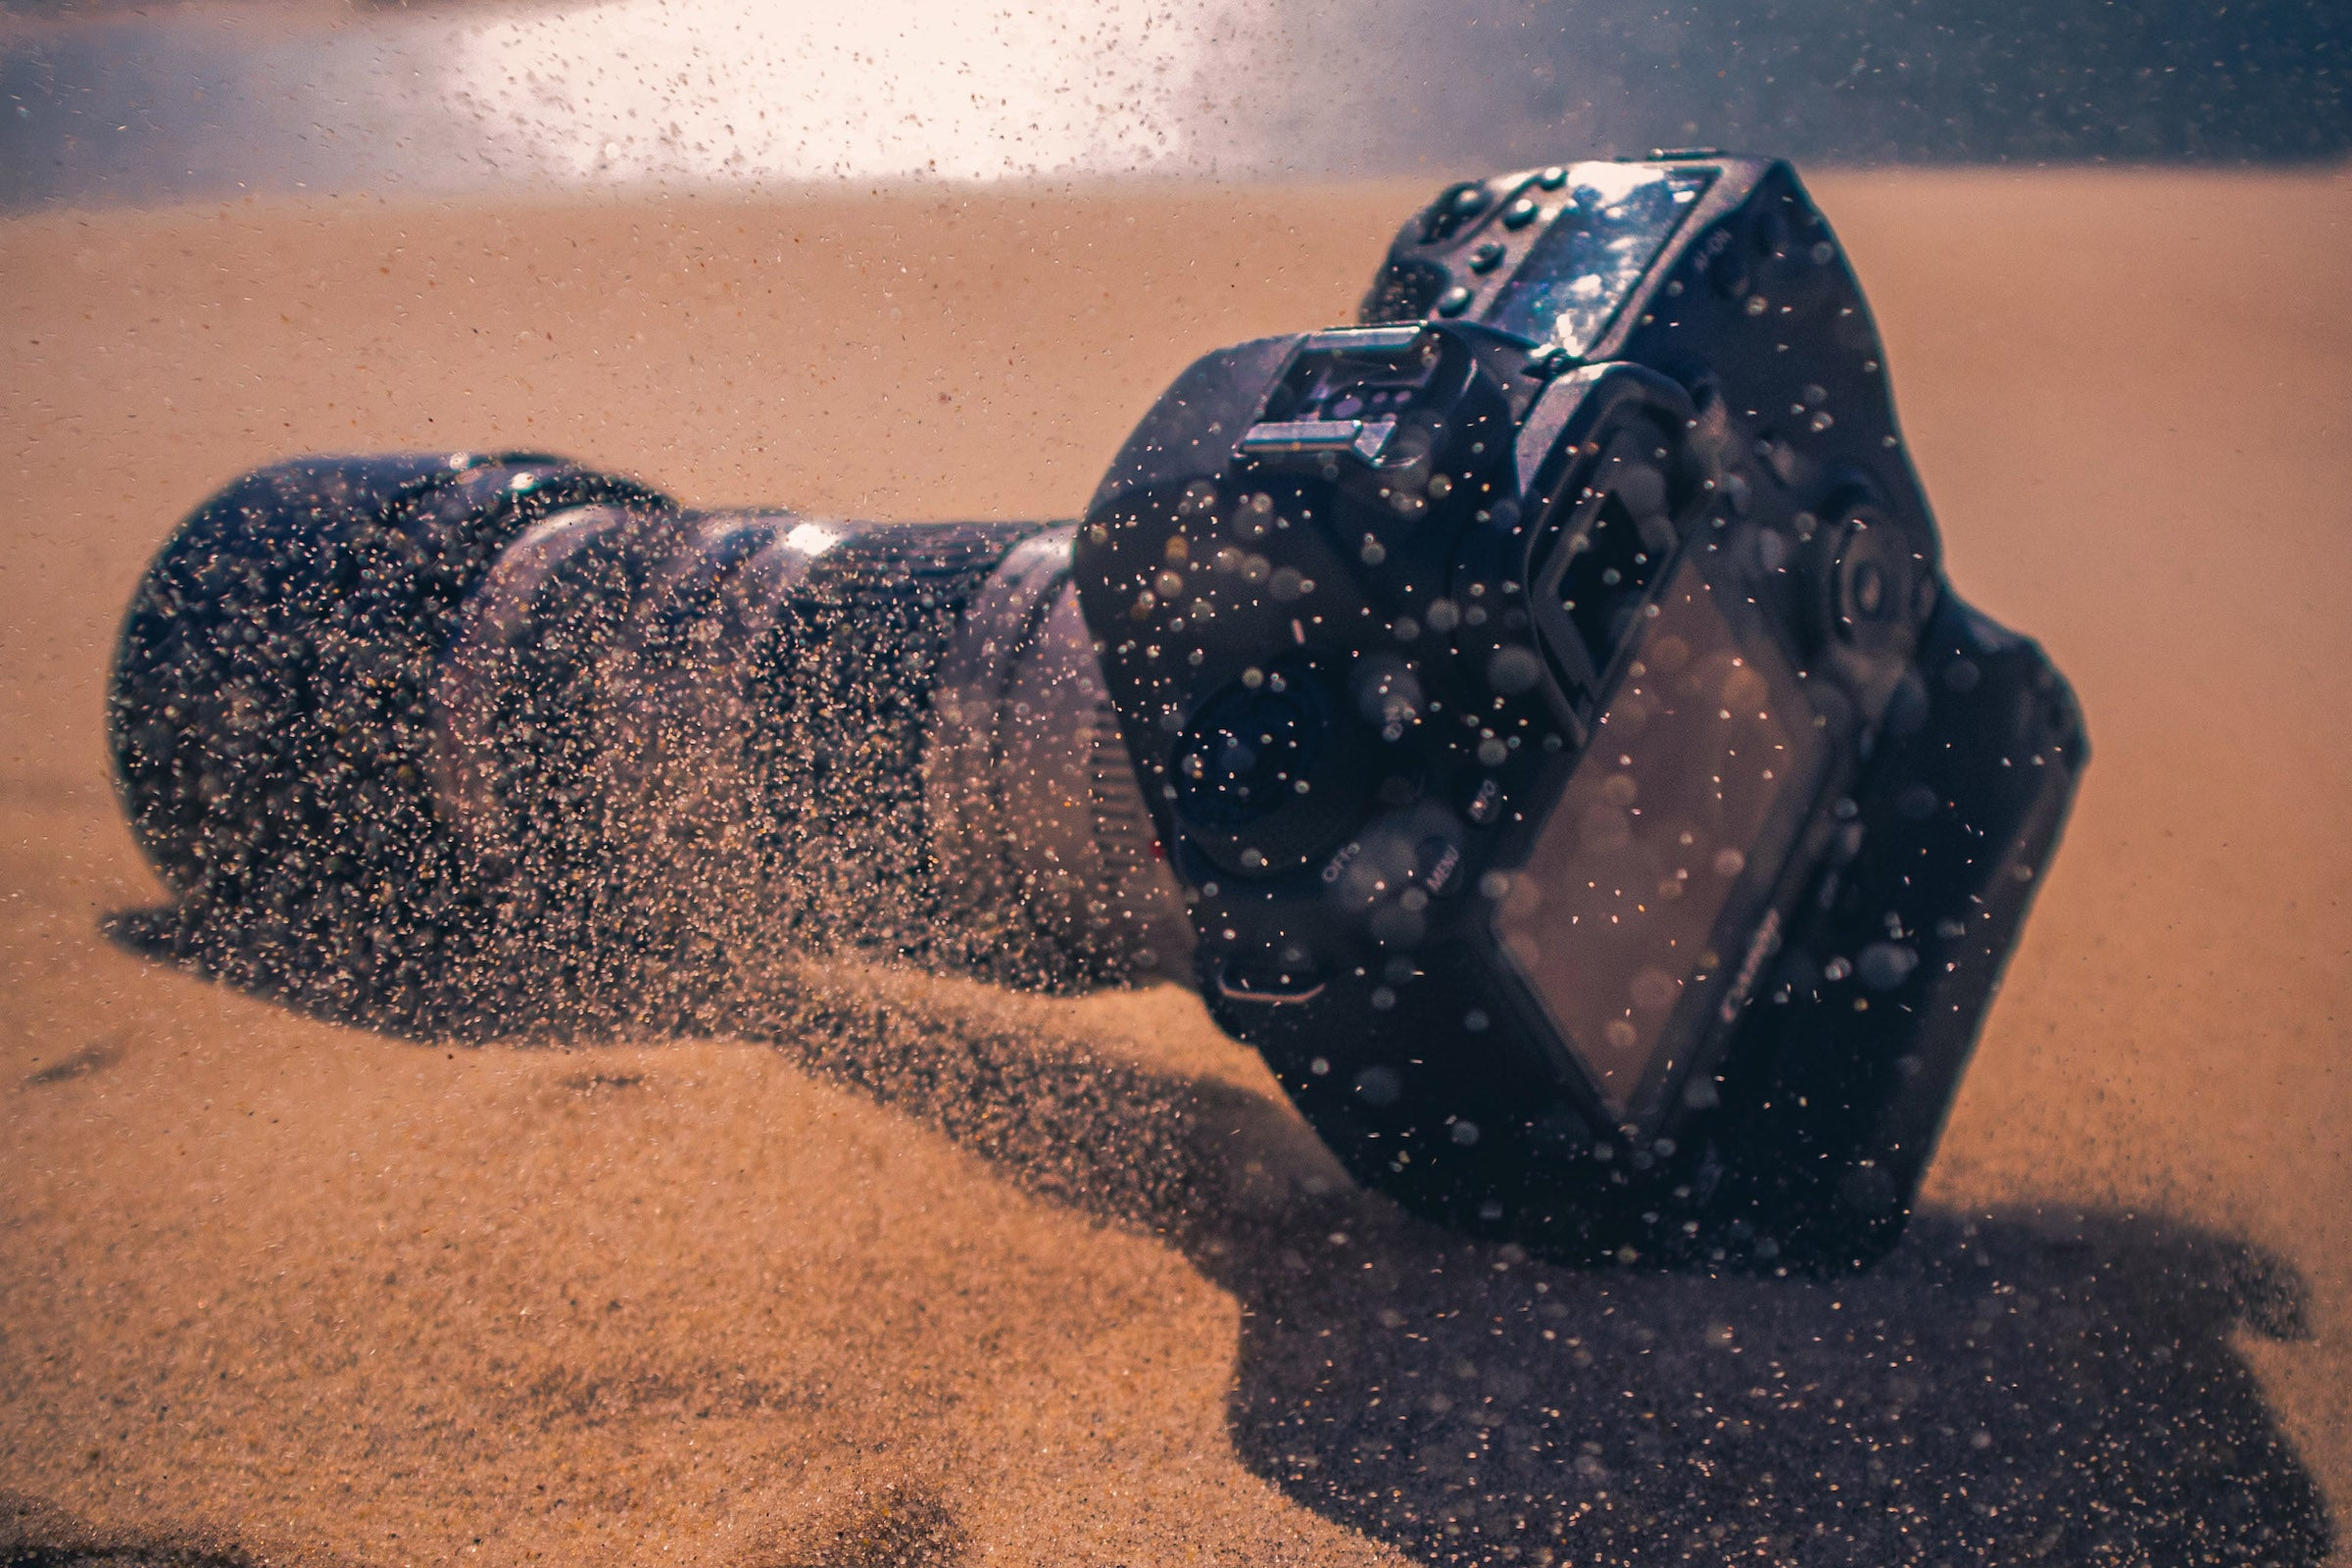 sand gets in a camera while hiking in the desert